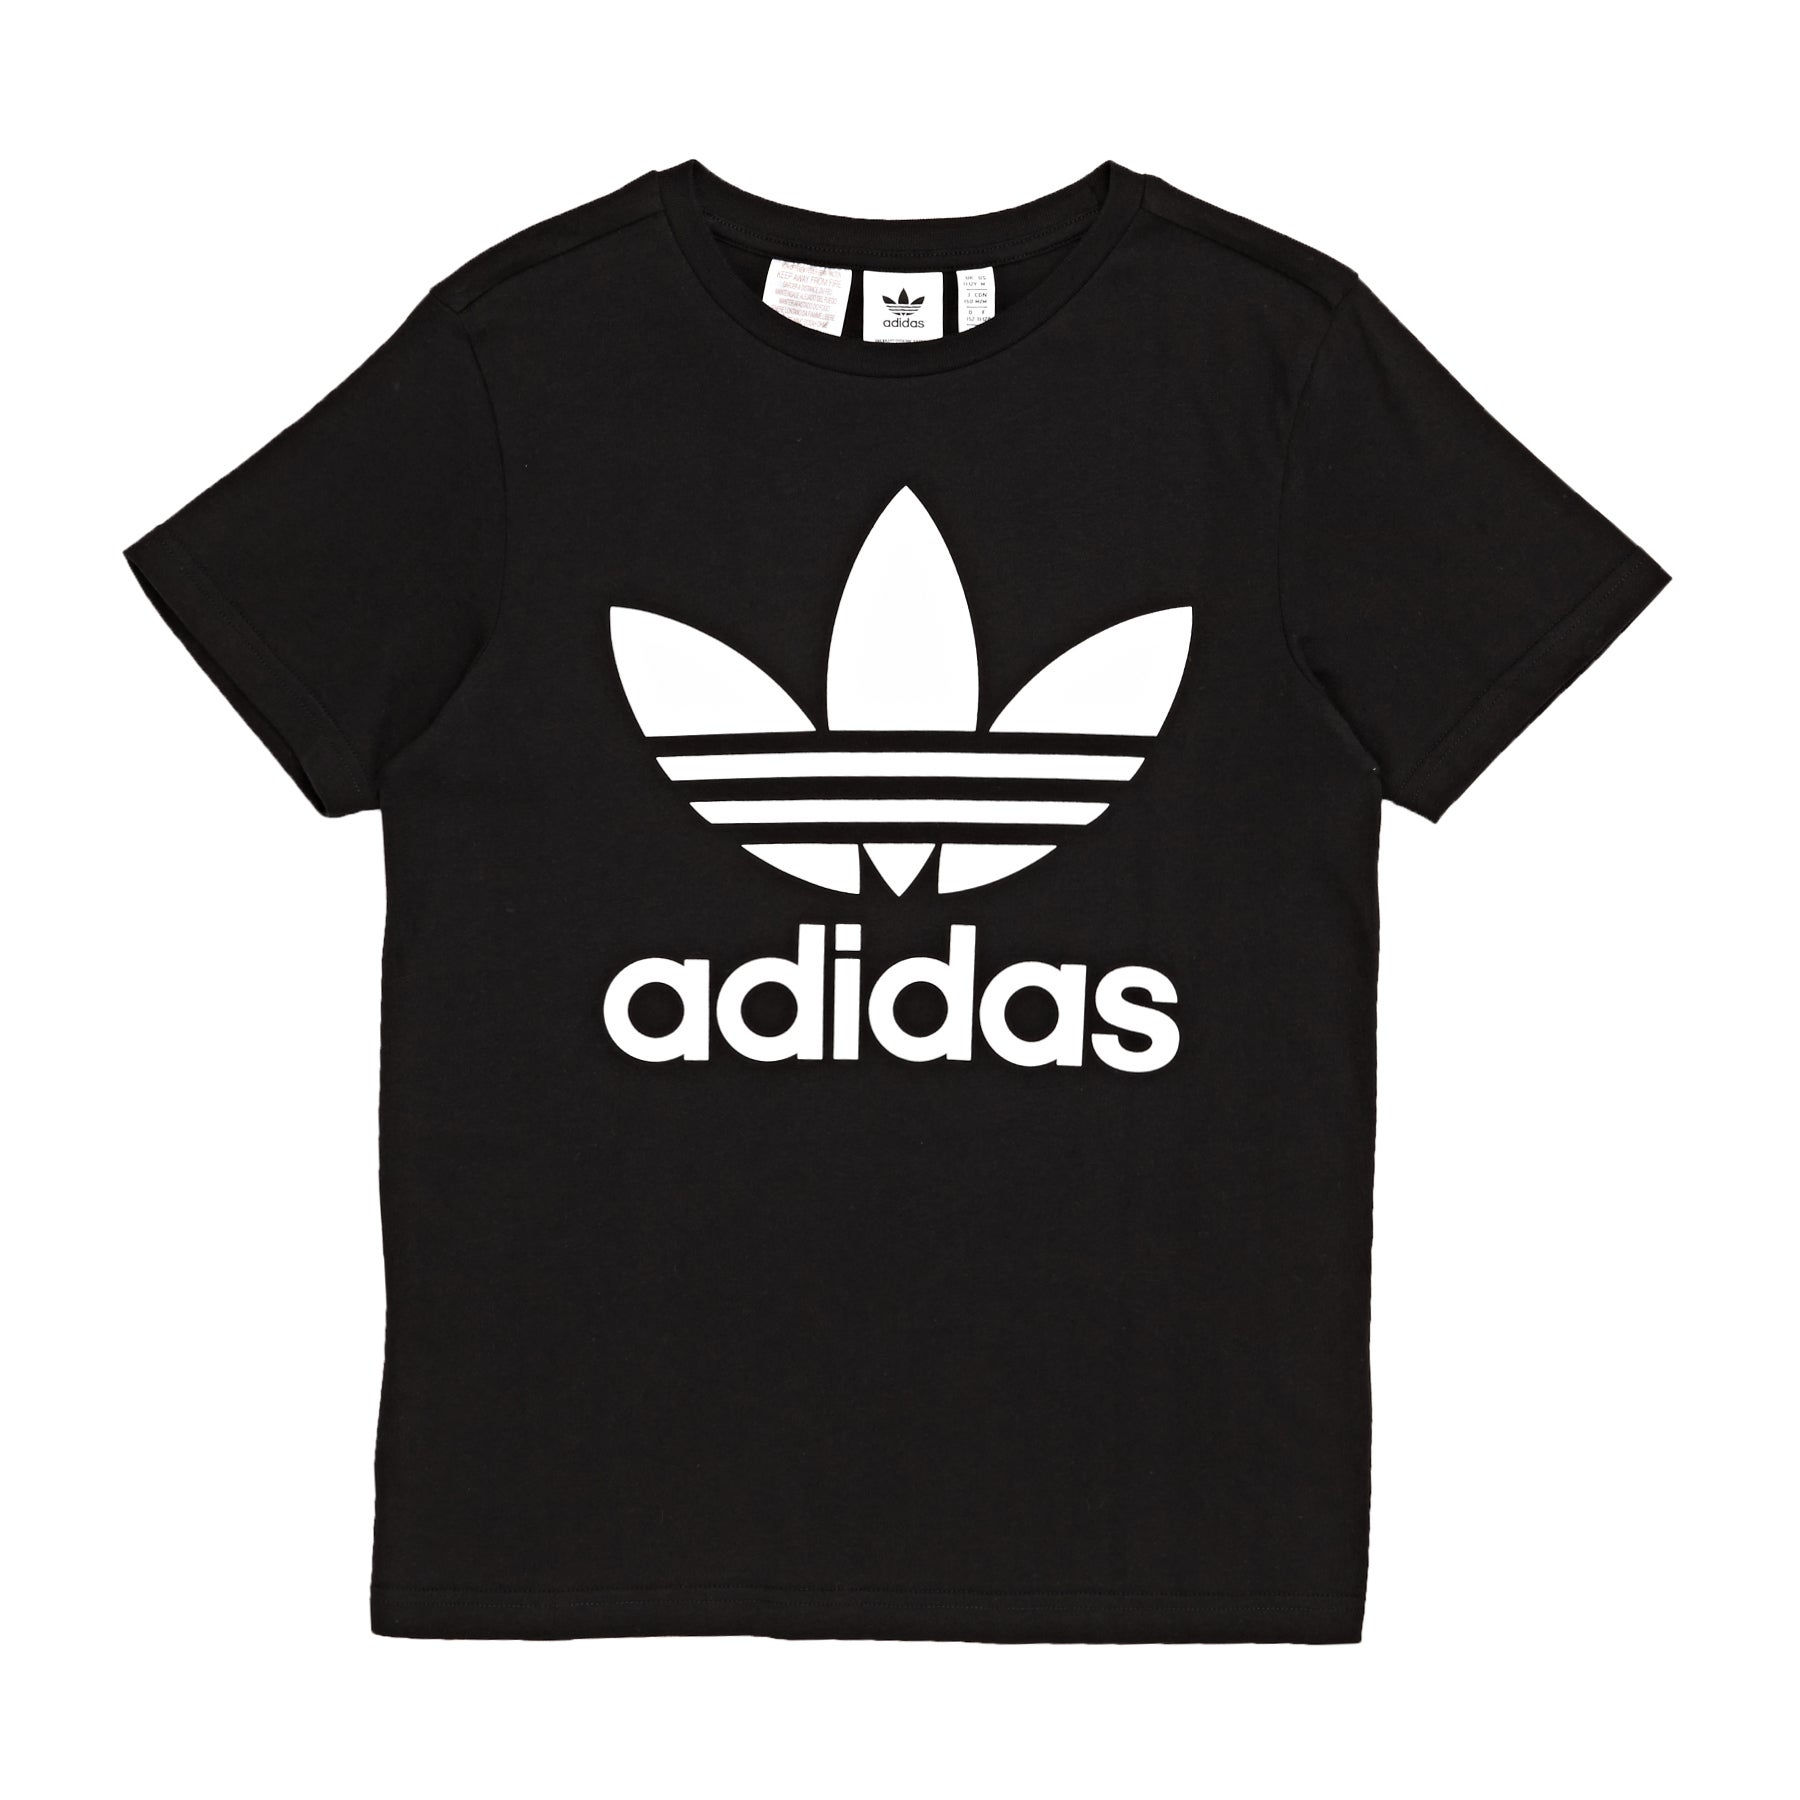 Adidas Originals Trefoil Boys Short Sleeve T-Shirt - Black/white